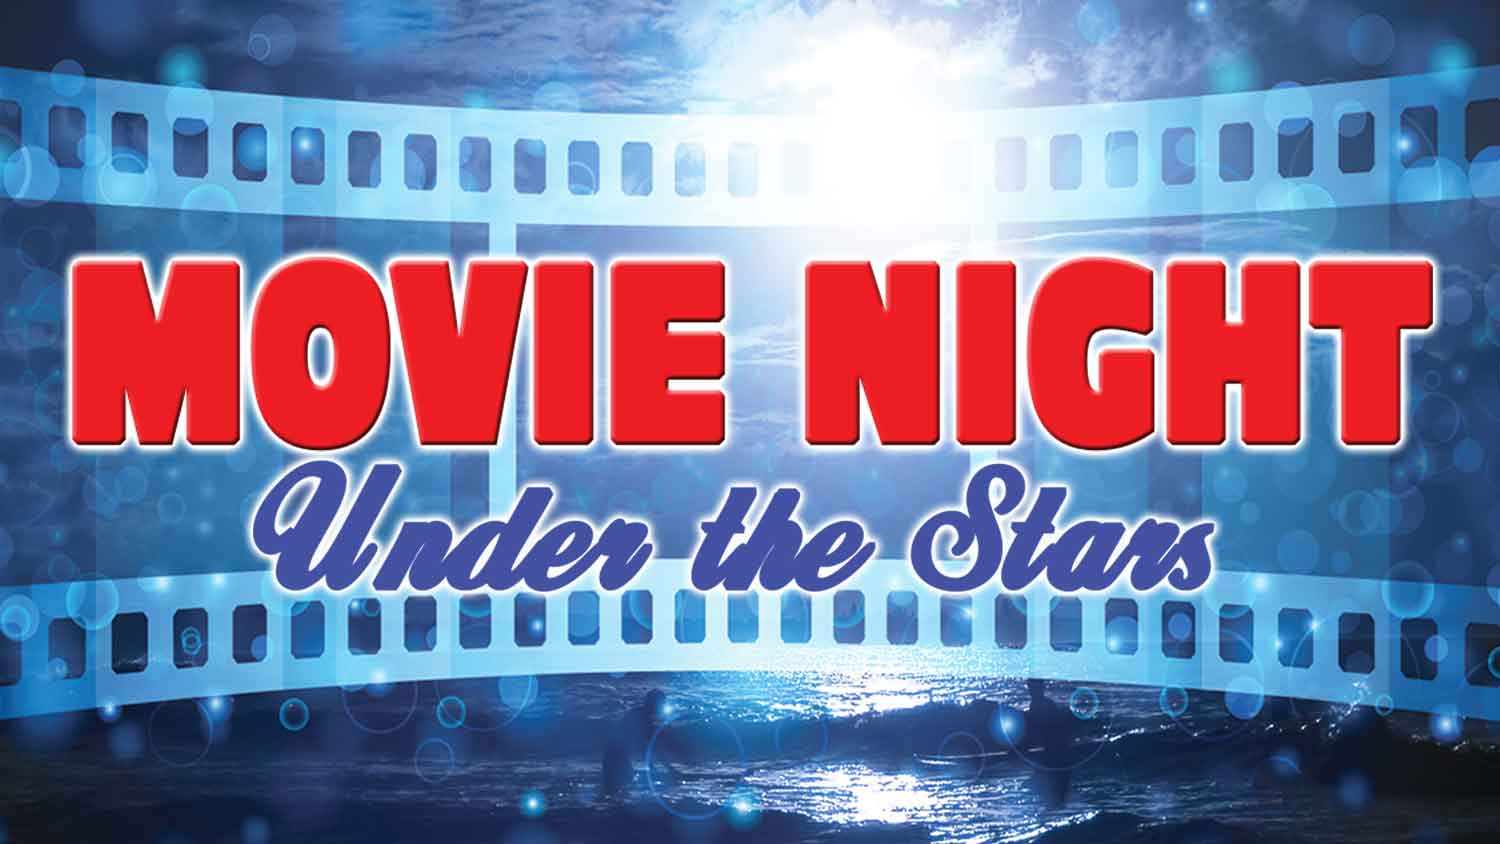 Movie Night Under Stars